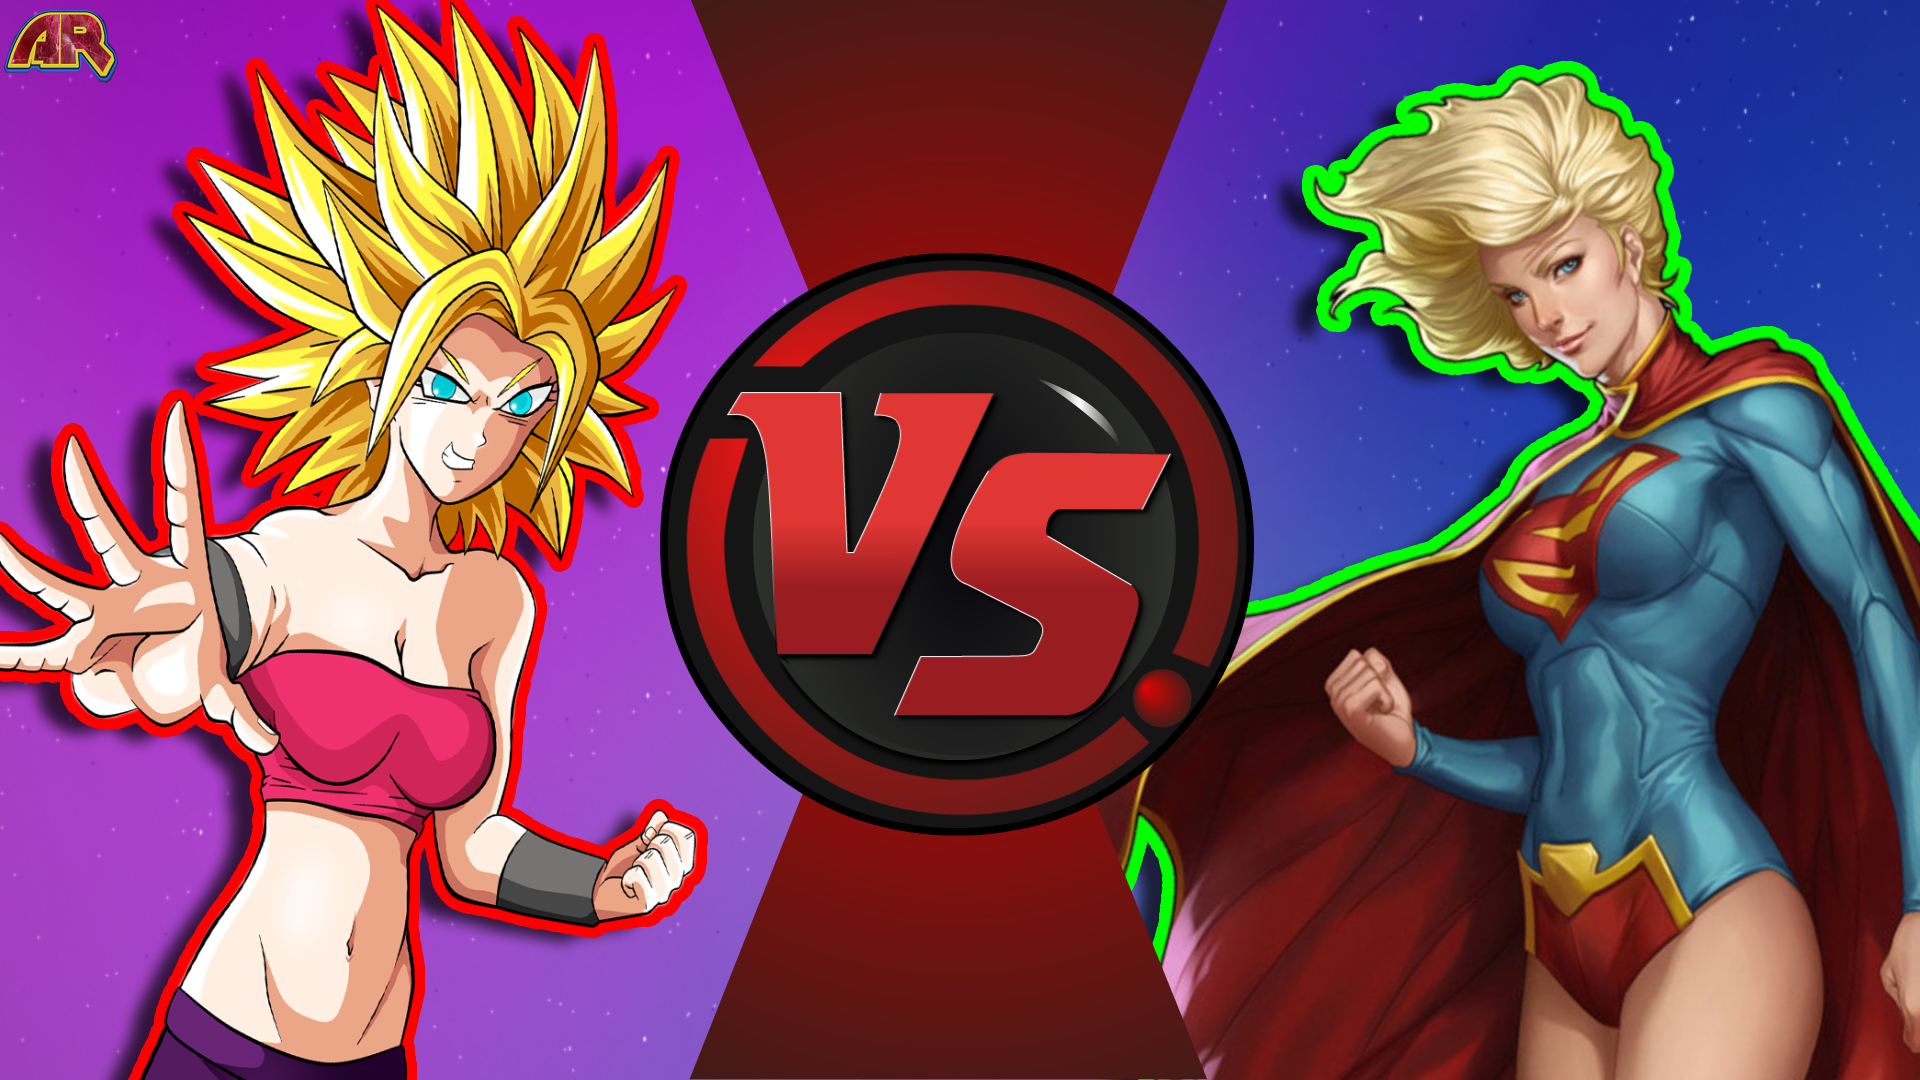 CFC|Caulifla vs. New 52 Supergirl by Vex2001 on DeviantArt